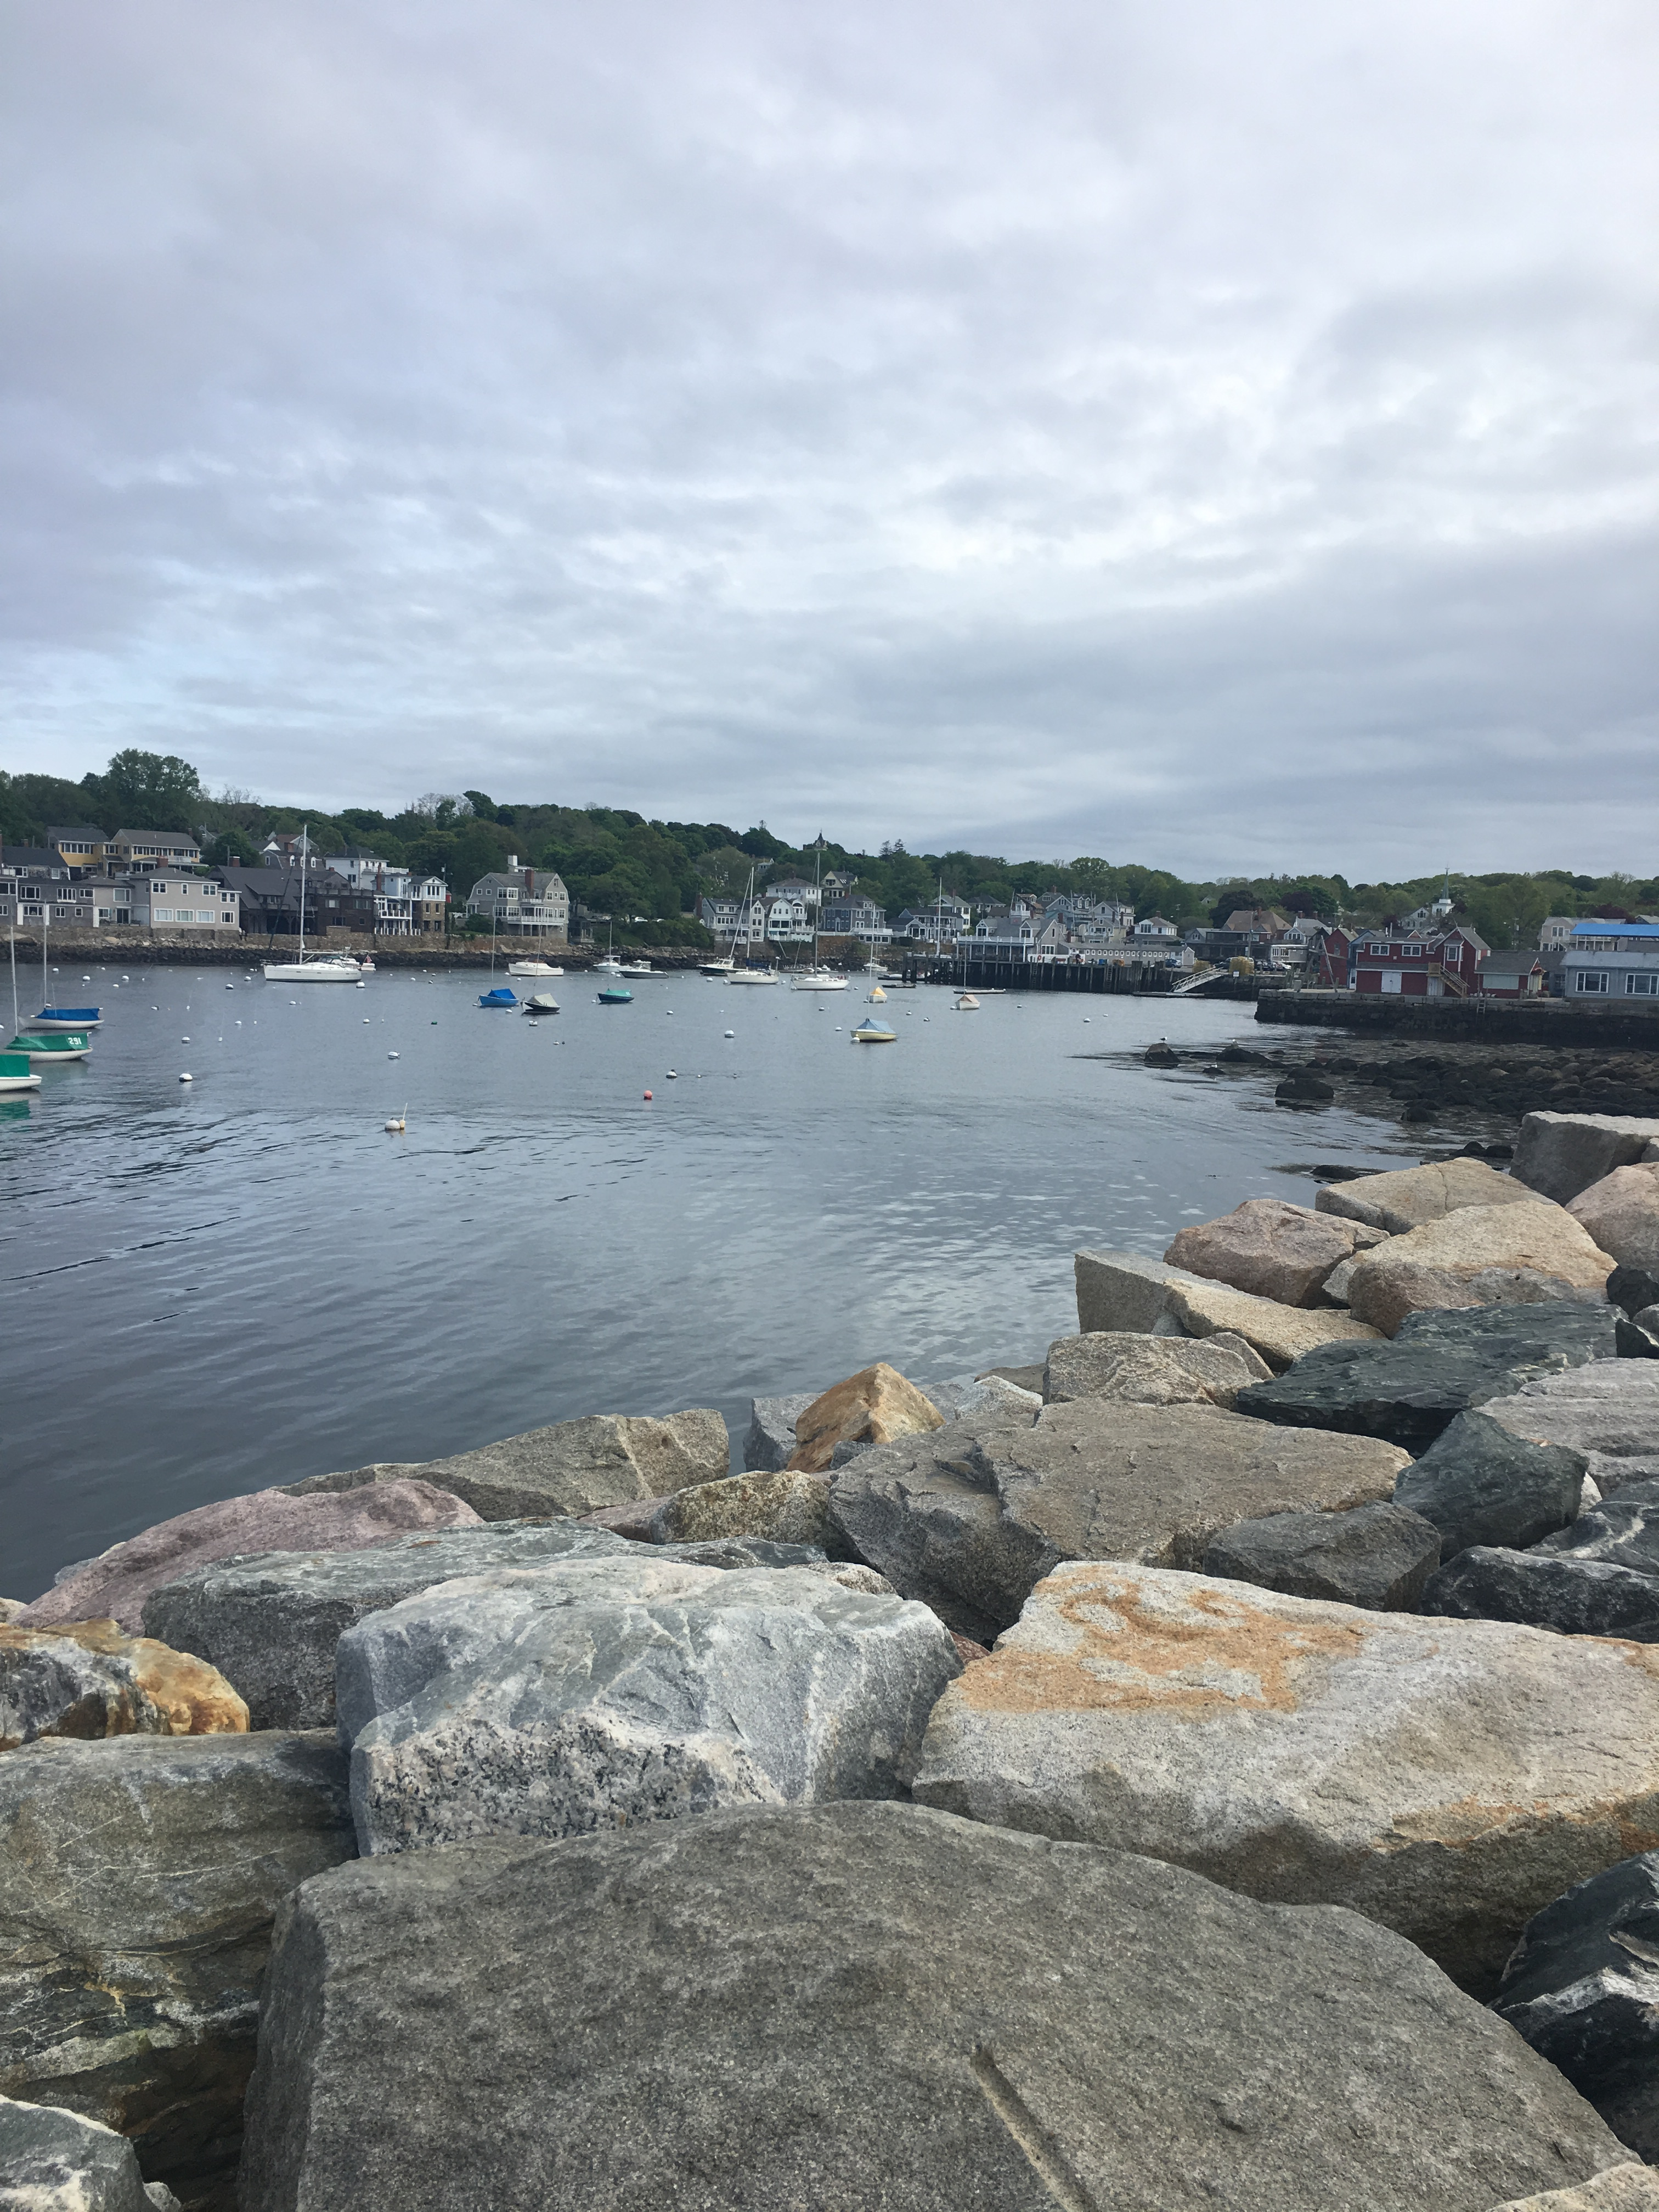 Weekend in Rockport with a baby